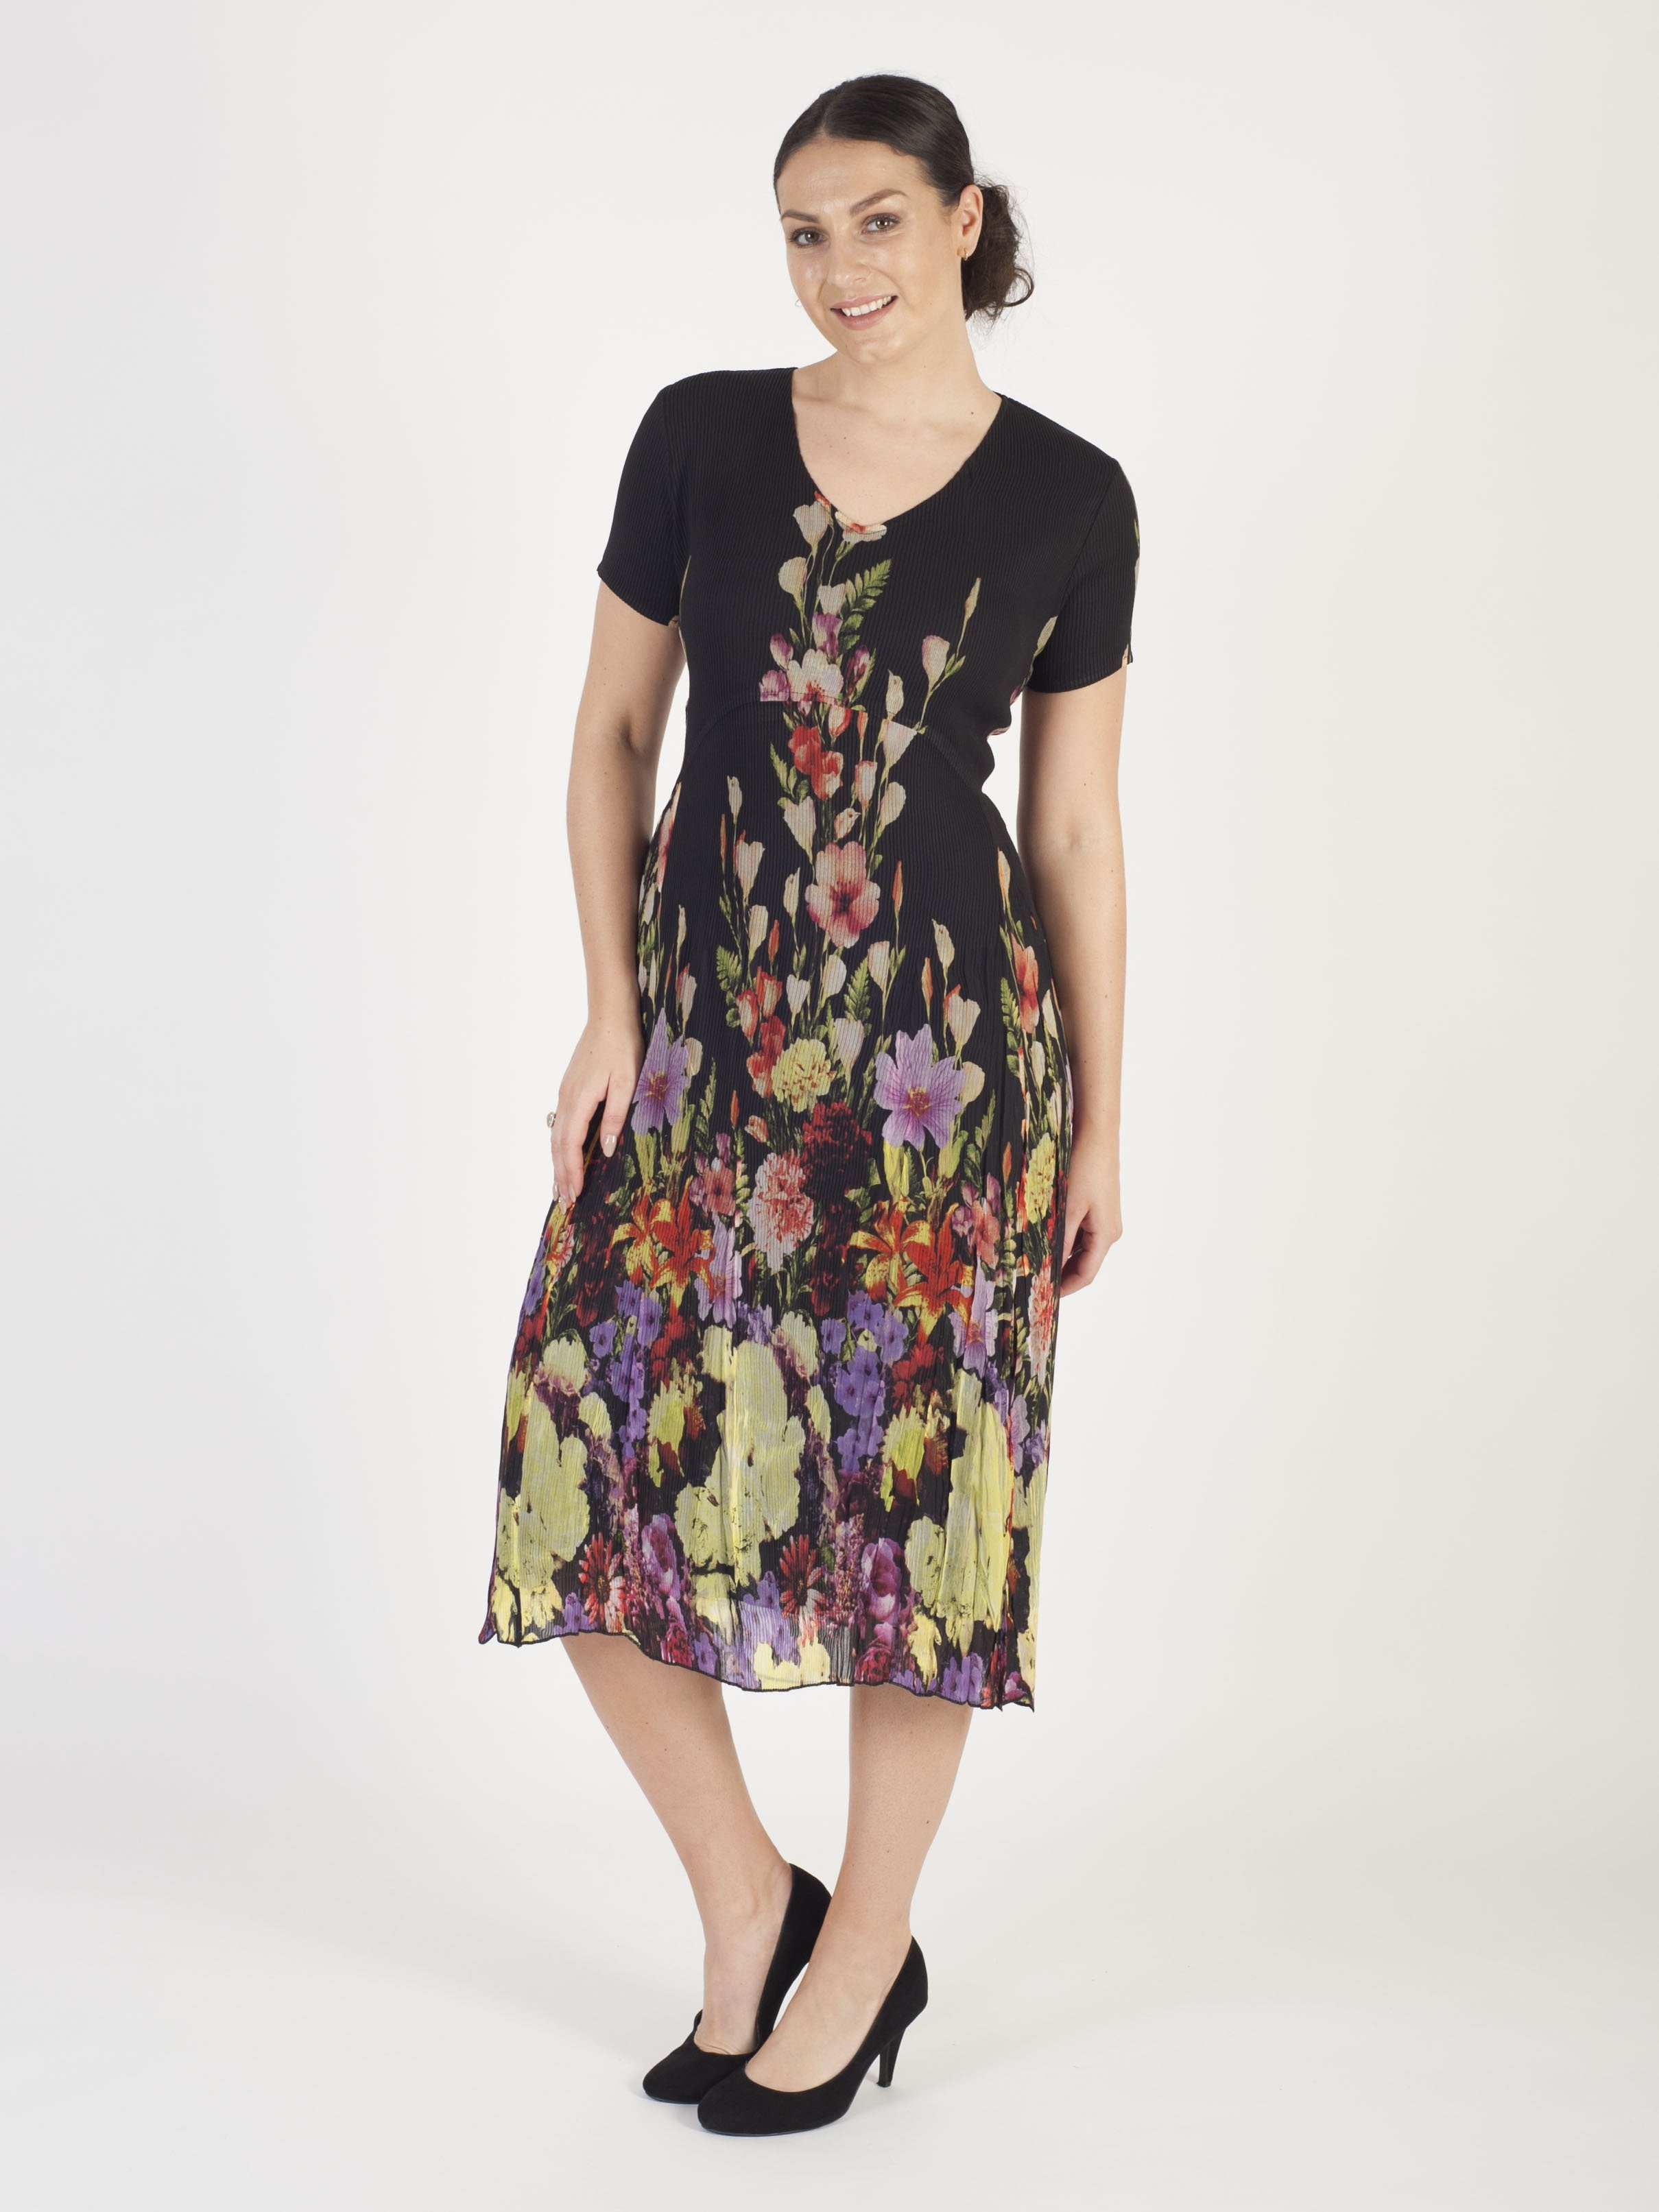 Black Floral Border Crush Pleat Chiffon Dress